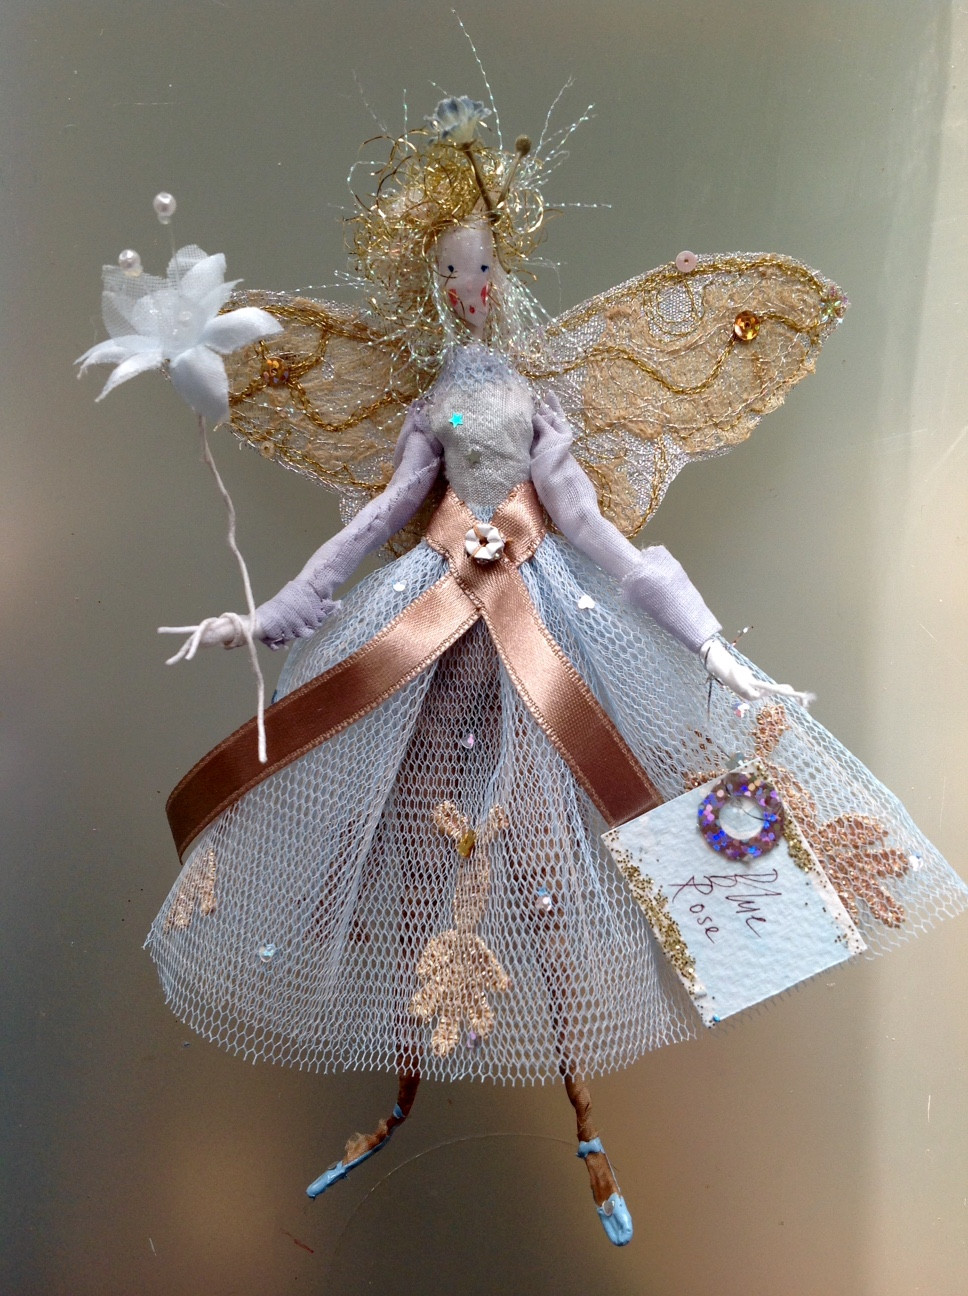 BLUE ROSE A 17cm high fairy wearing a and dyed silk and organdie top with a stiff net skirt embellished with brocade and sequins. Her wings are embroidered and she has a special flower sequin at the back of her waist. She comes in an organza bag with dried petals in it . £35 plus £3.50 p&p.